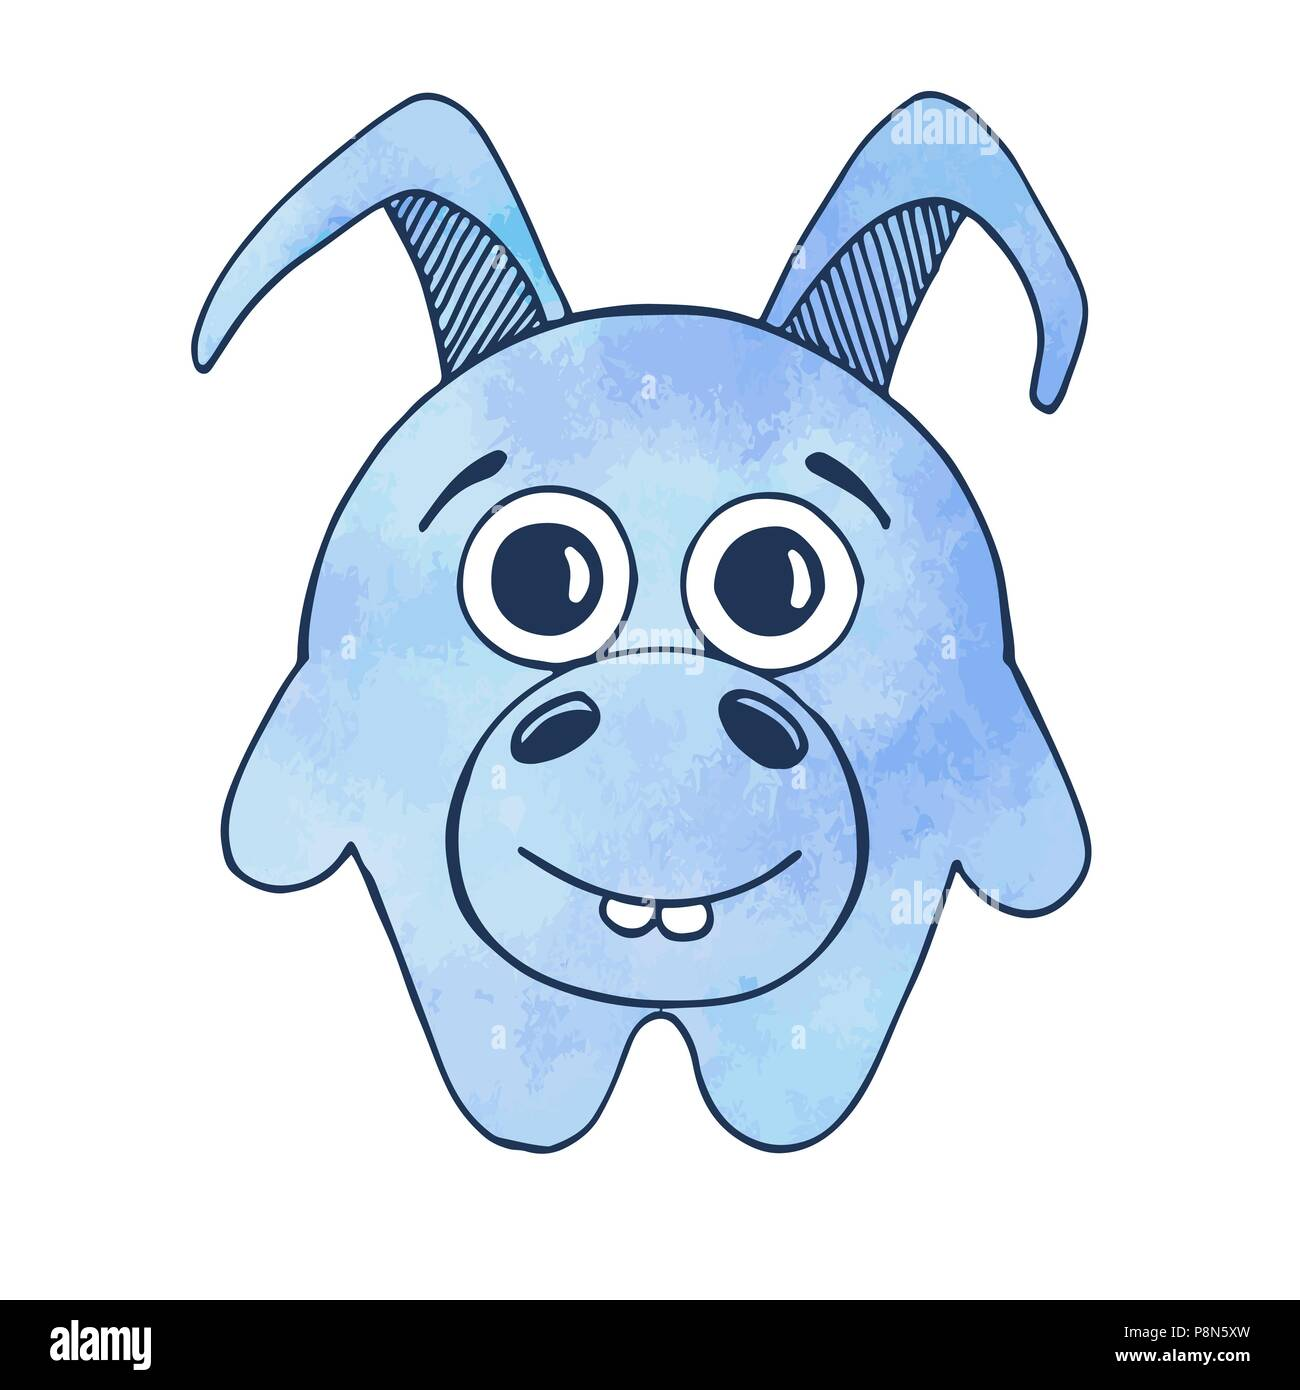 Cute cartoon donkey isolated on white background. Vector illustration in sketch style. Stylized watercolor. EPS 10 - Stock Image